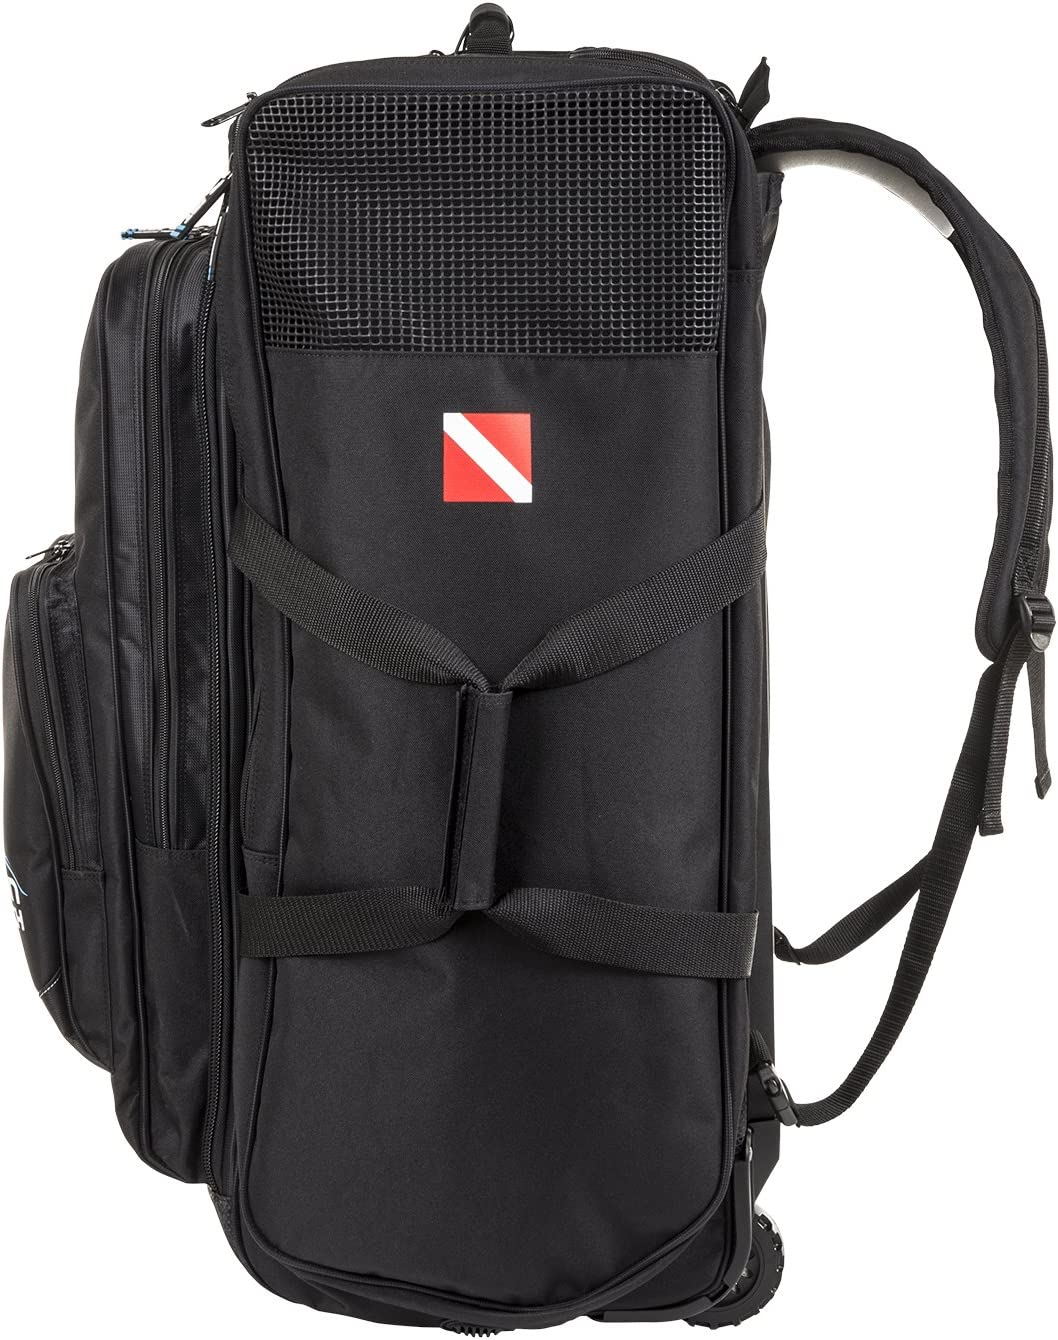 IST Roller Backpack / Equipment Bag for Scuba Diving & Snorkeling Gear, Travel Luggage with Wheels